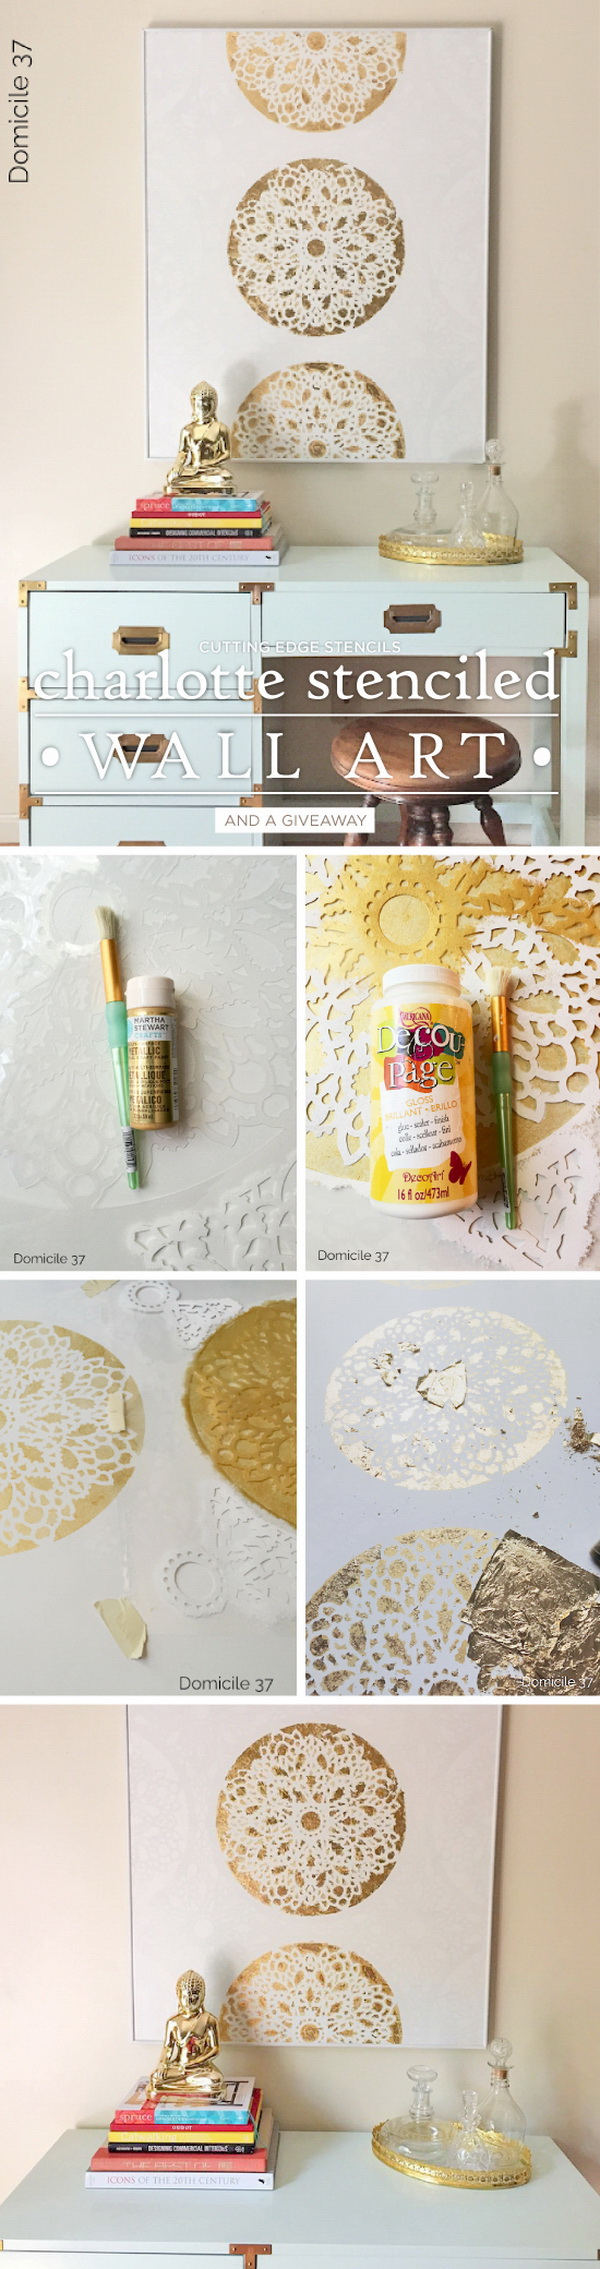 25 stunning diy wall art ideas tutorials for creative juice - Wall decor diy ...